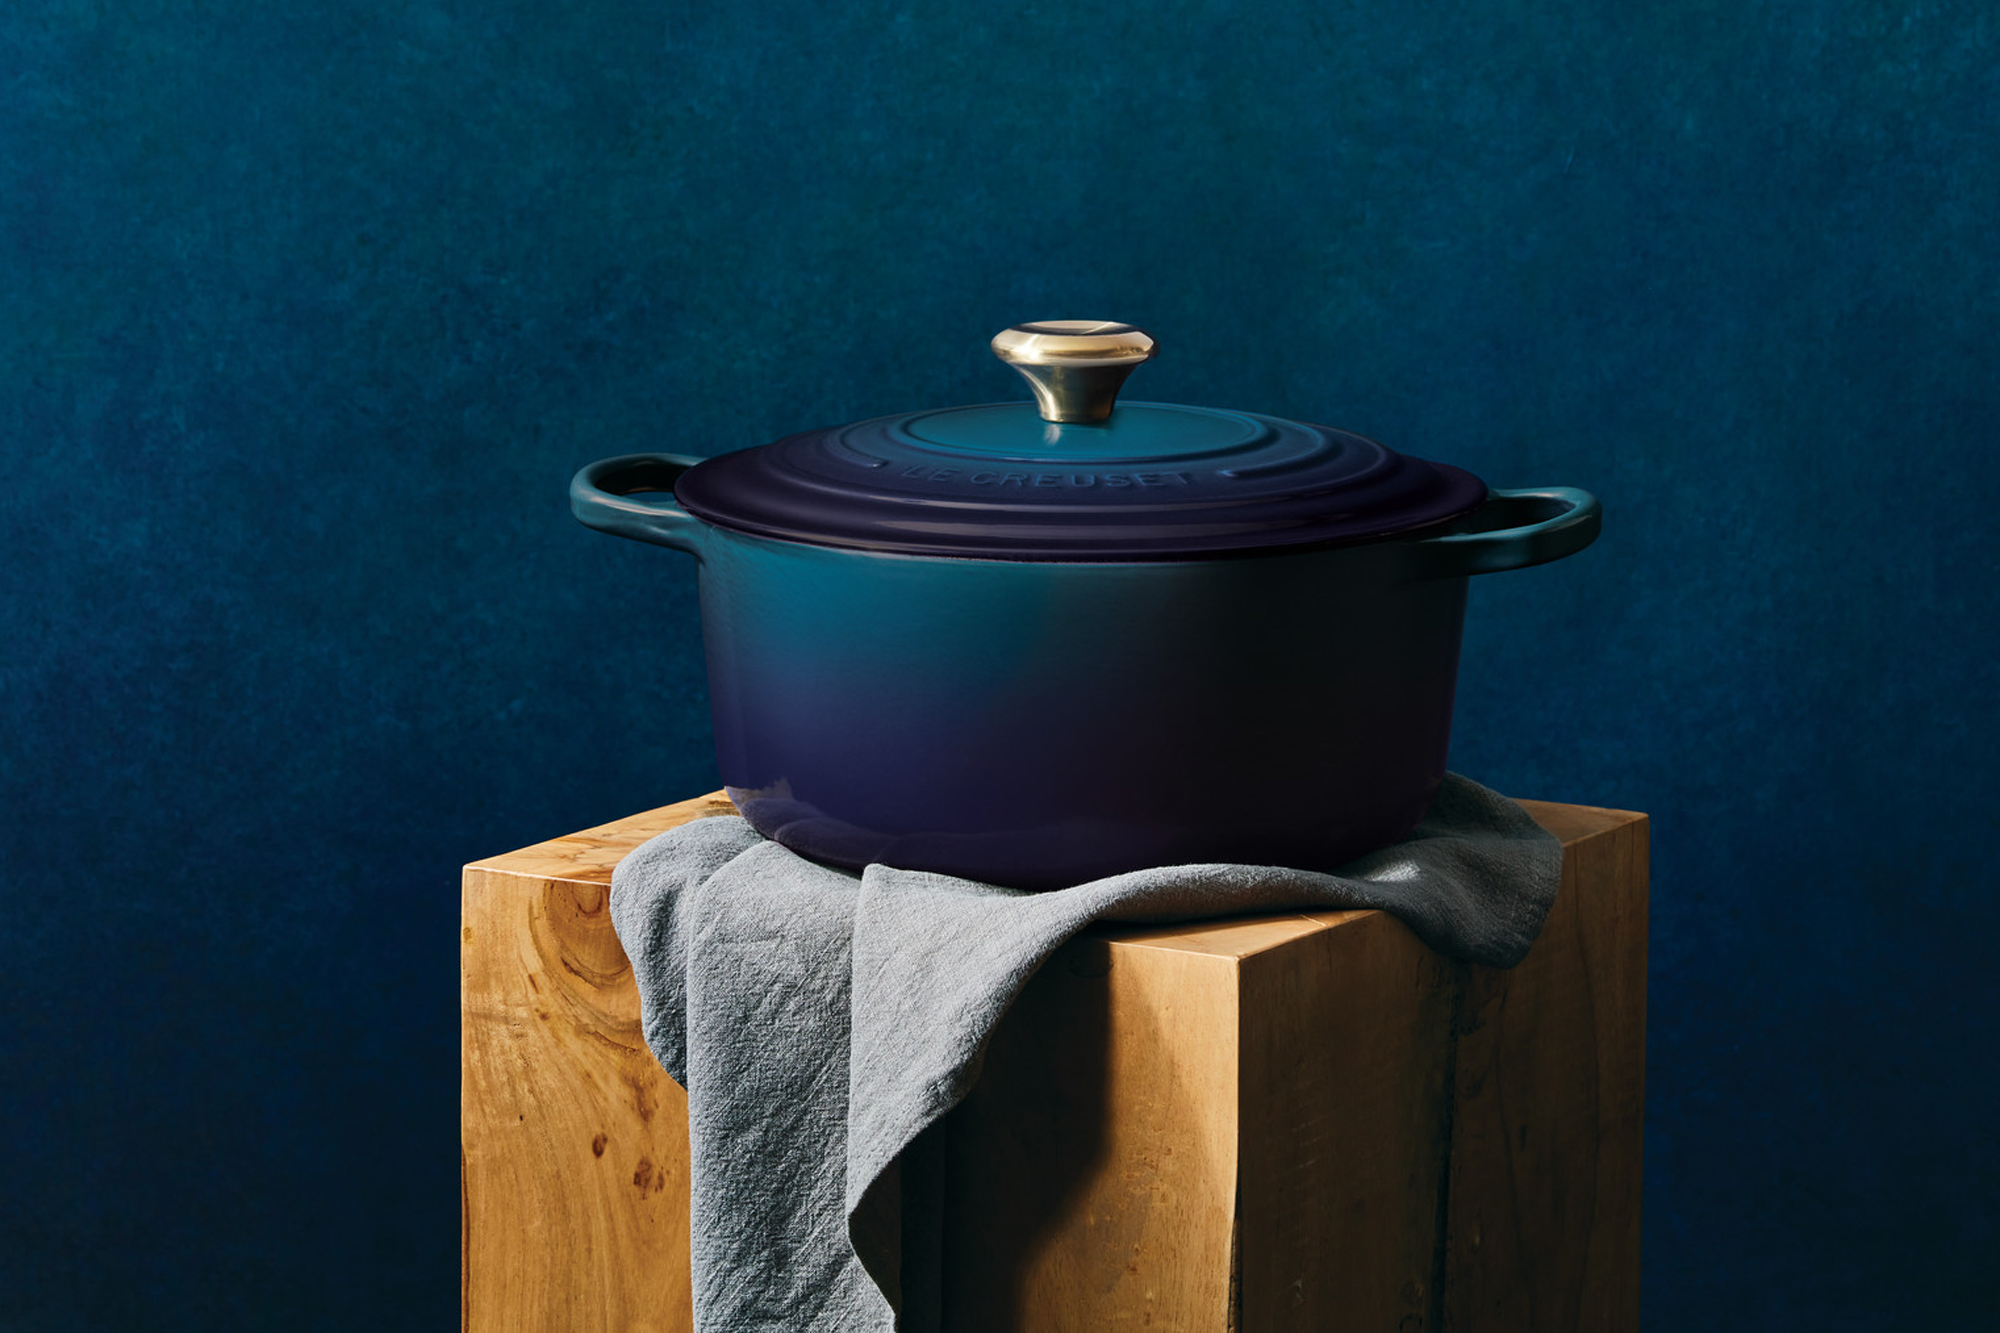 Le Creuset agave oven